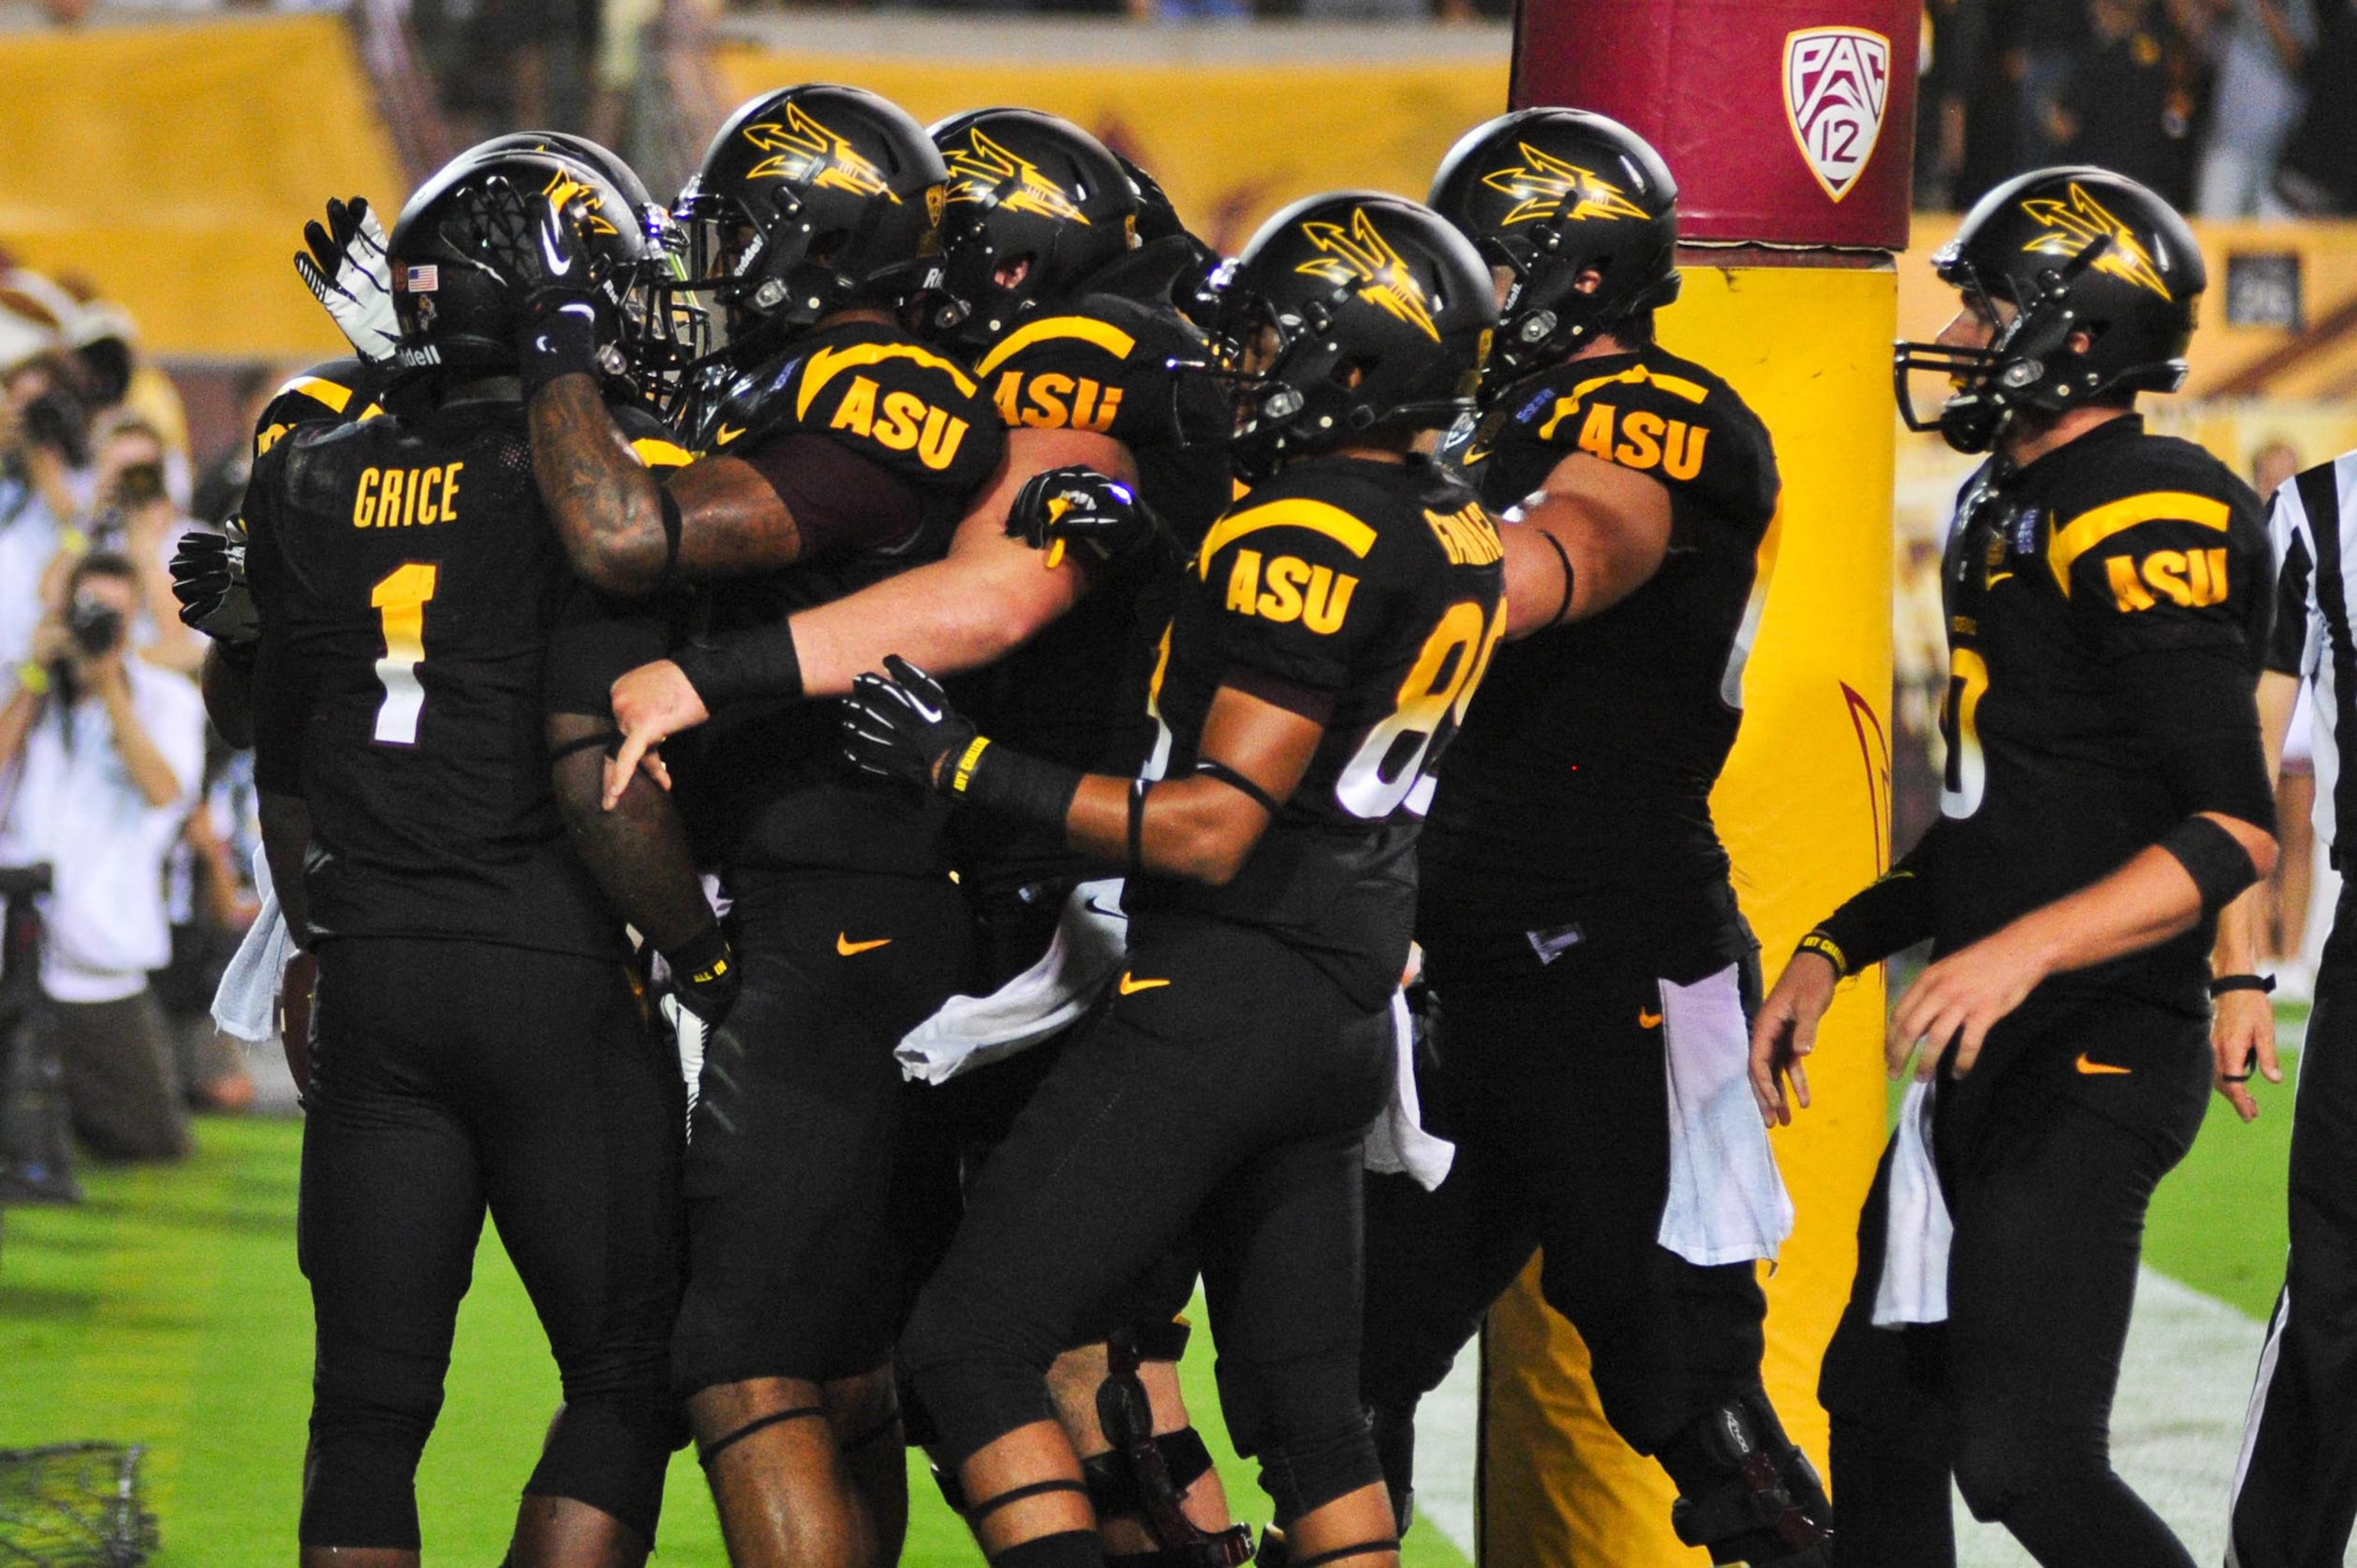 Arizona State football recruiting 2013: Sun Devils strong all around